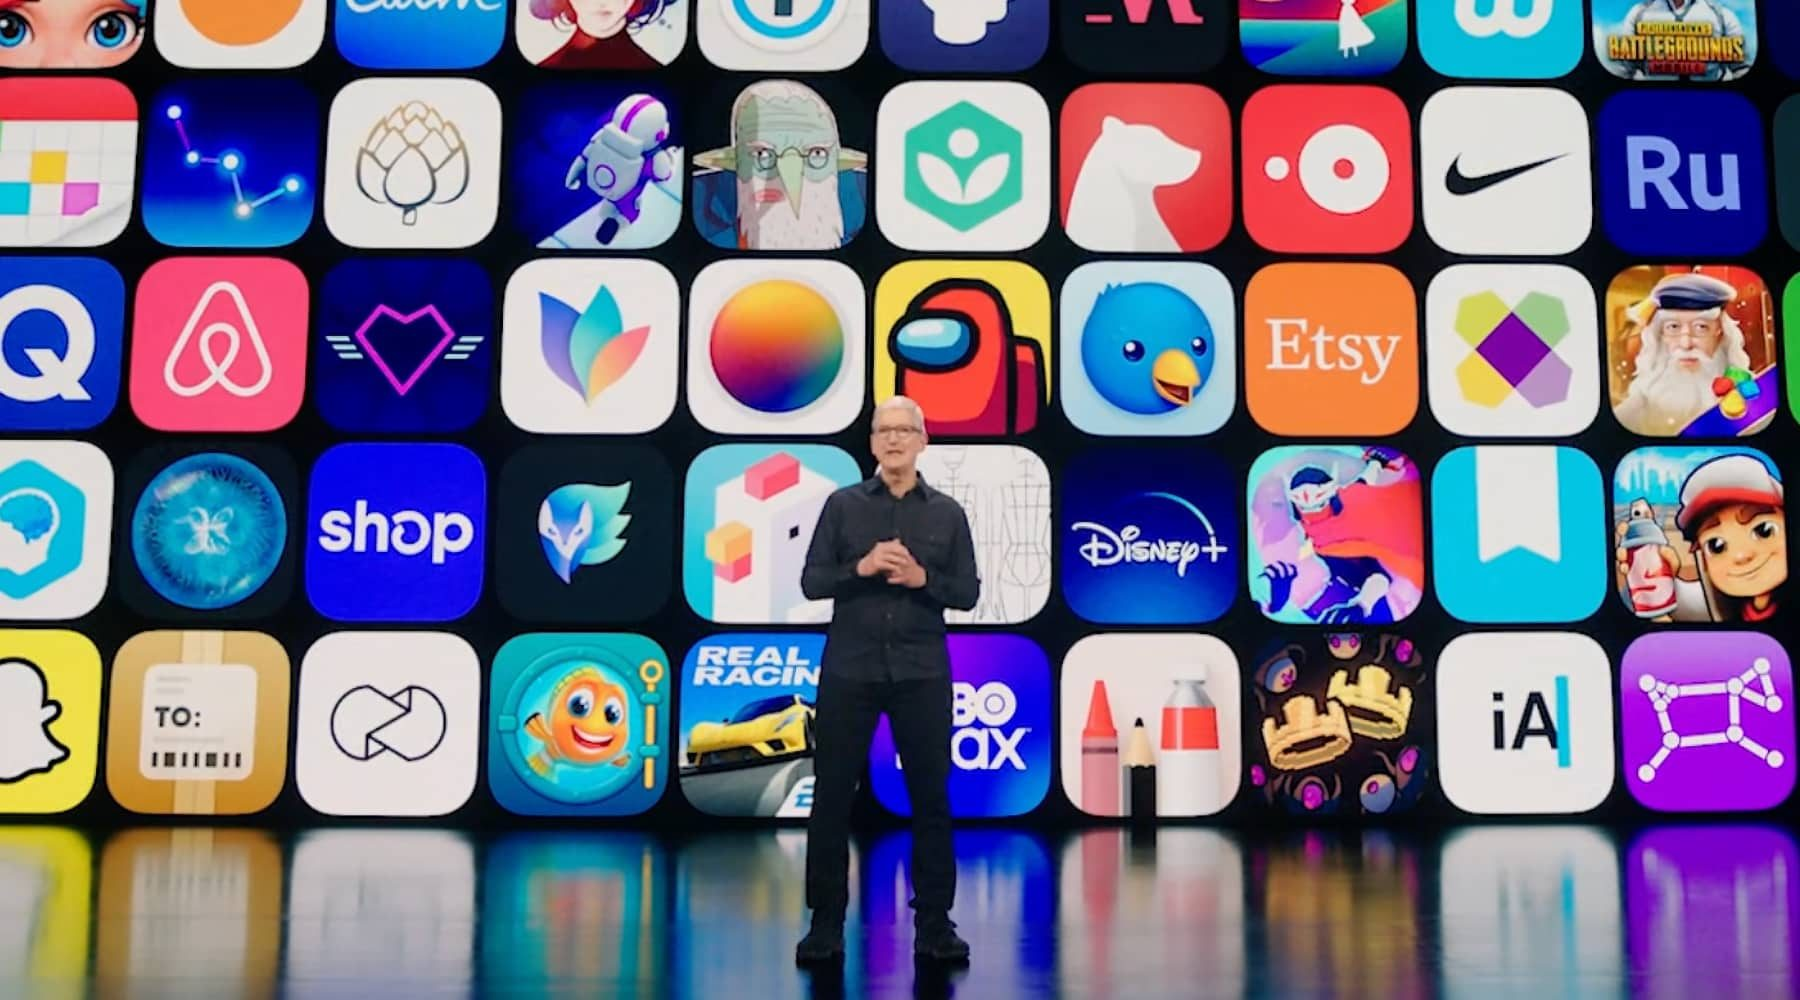 Full Apple WWDC 2021 roundup: iOS 15, macOS Monterey and more